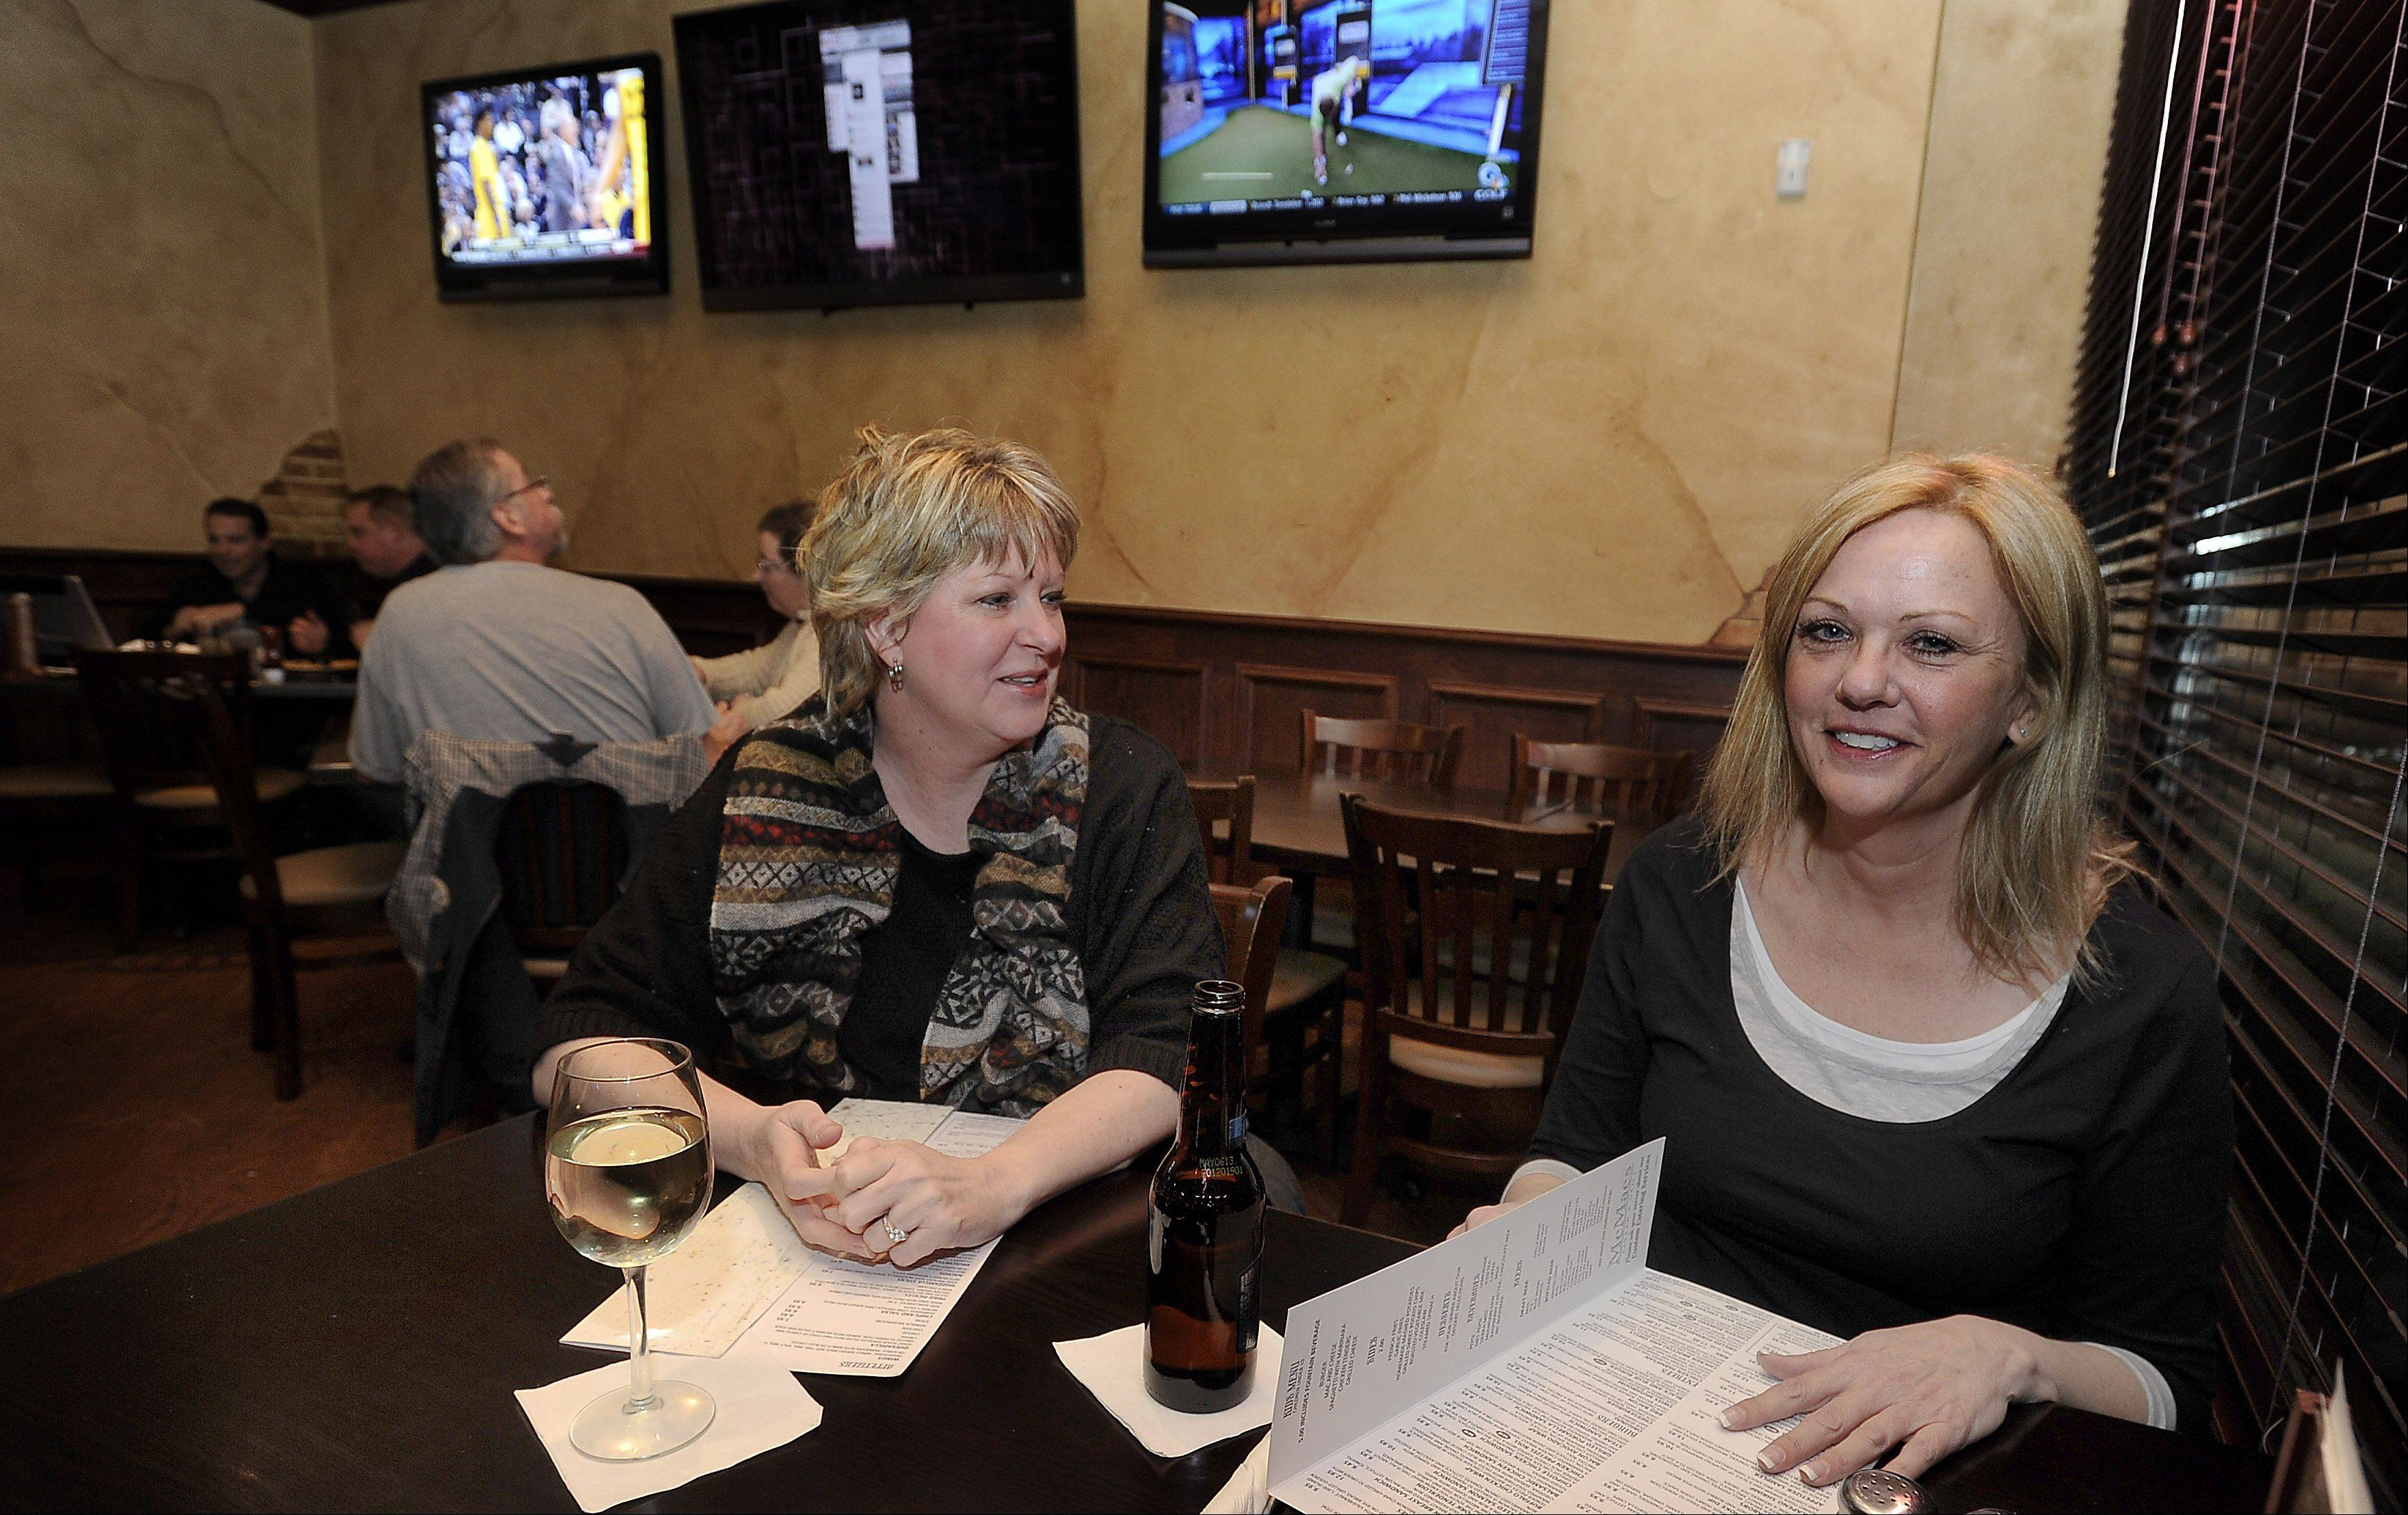 Nancy Fachie, left, and Sue Mullin of Bartlett enjoy wine before dinner at McMae's in Bartlett.